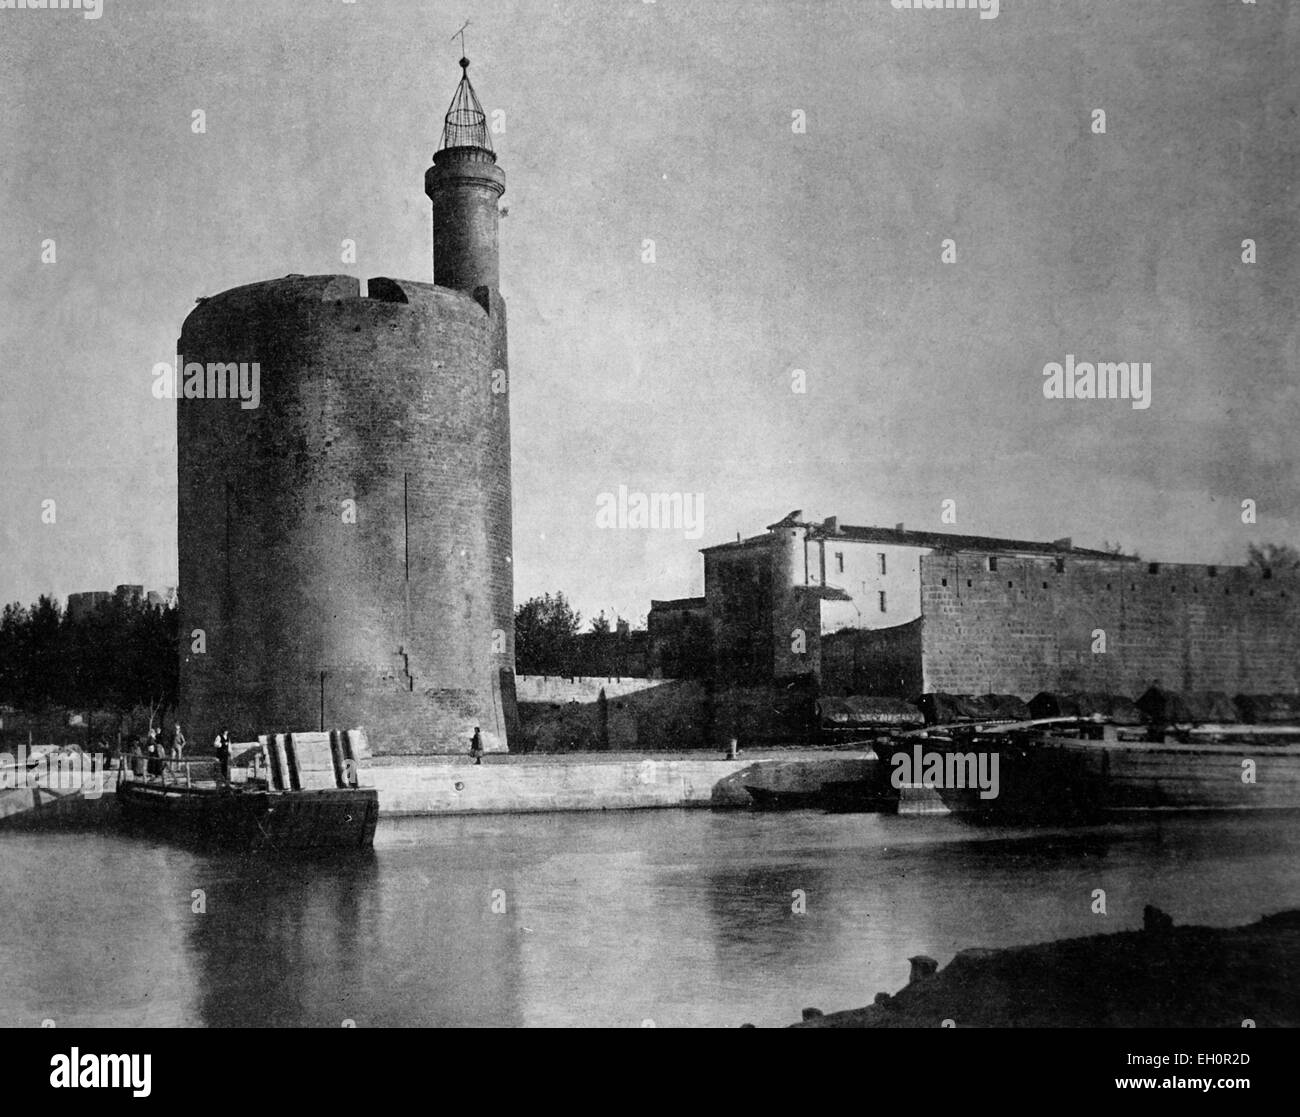 Early autotype of the Tour de Constance guard tower in Aigues Mortes, Departement Gard, France, historical photograph, - Stock Image